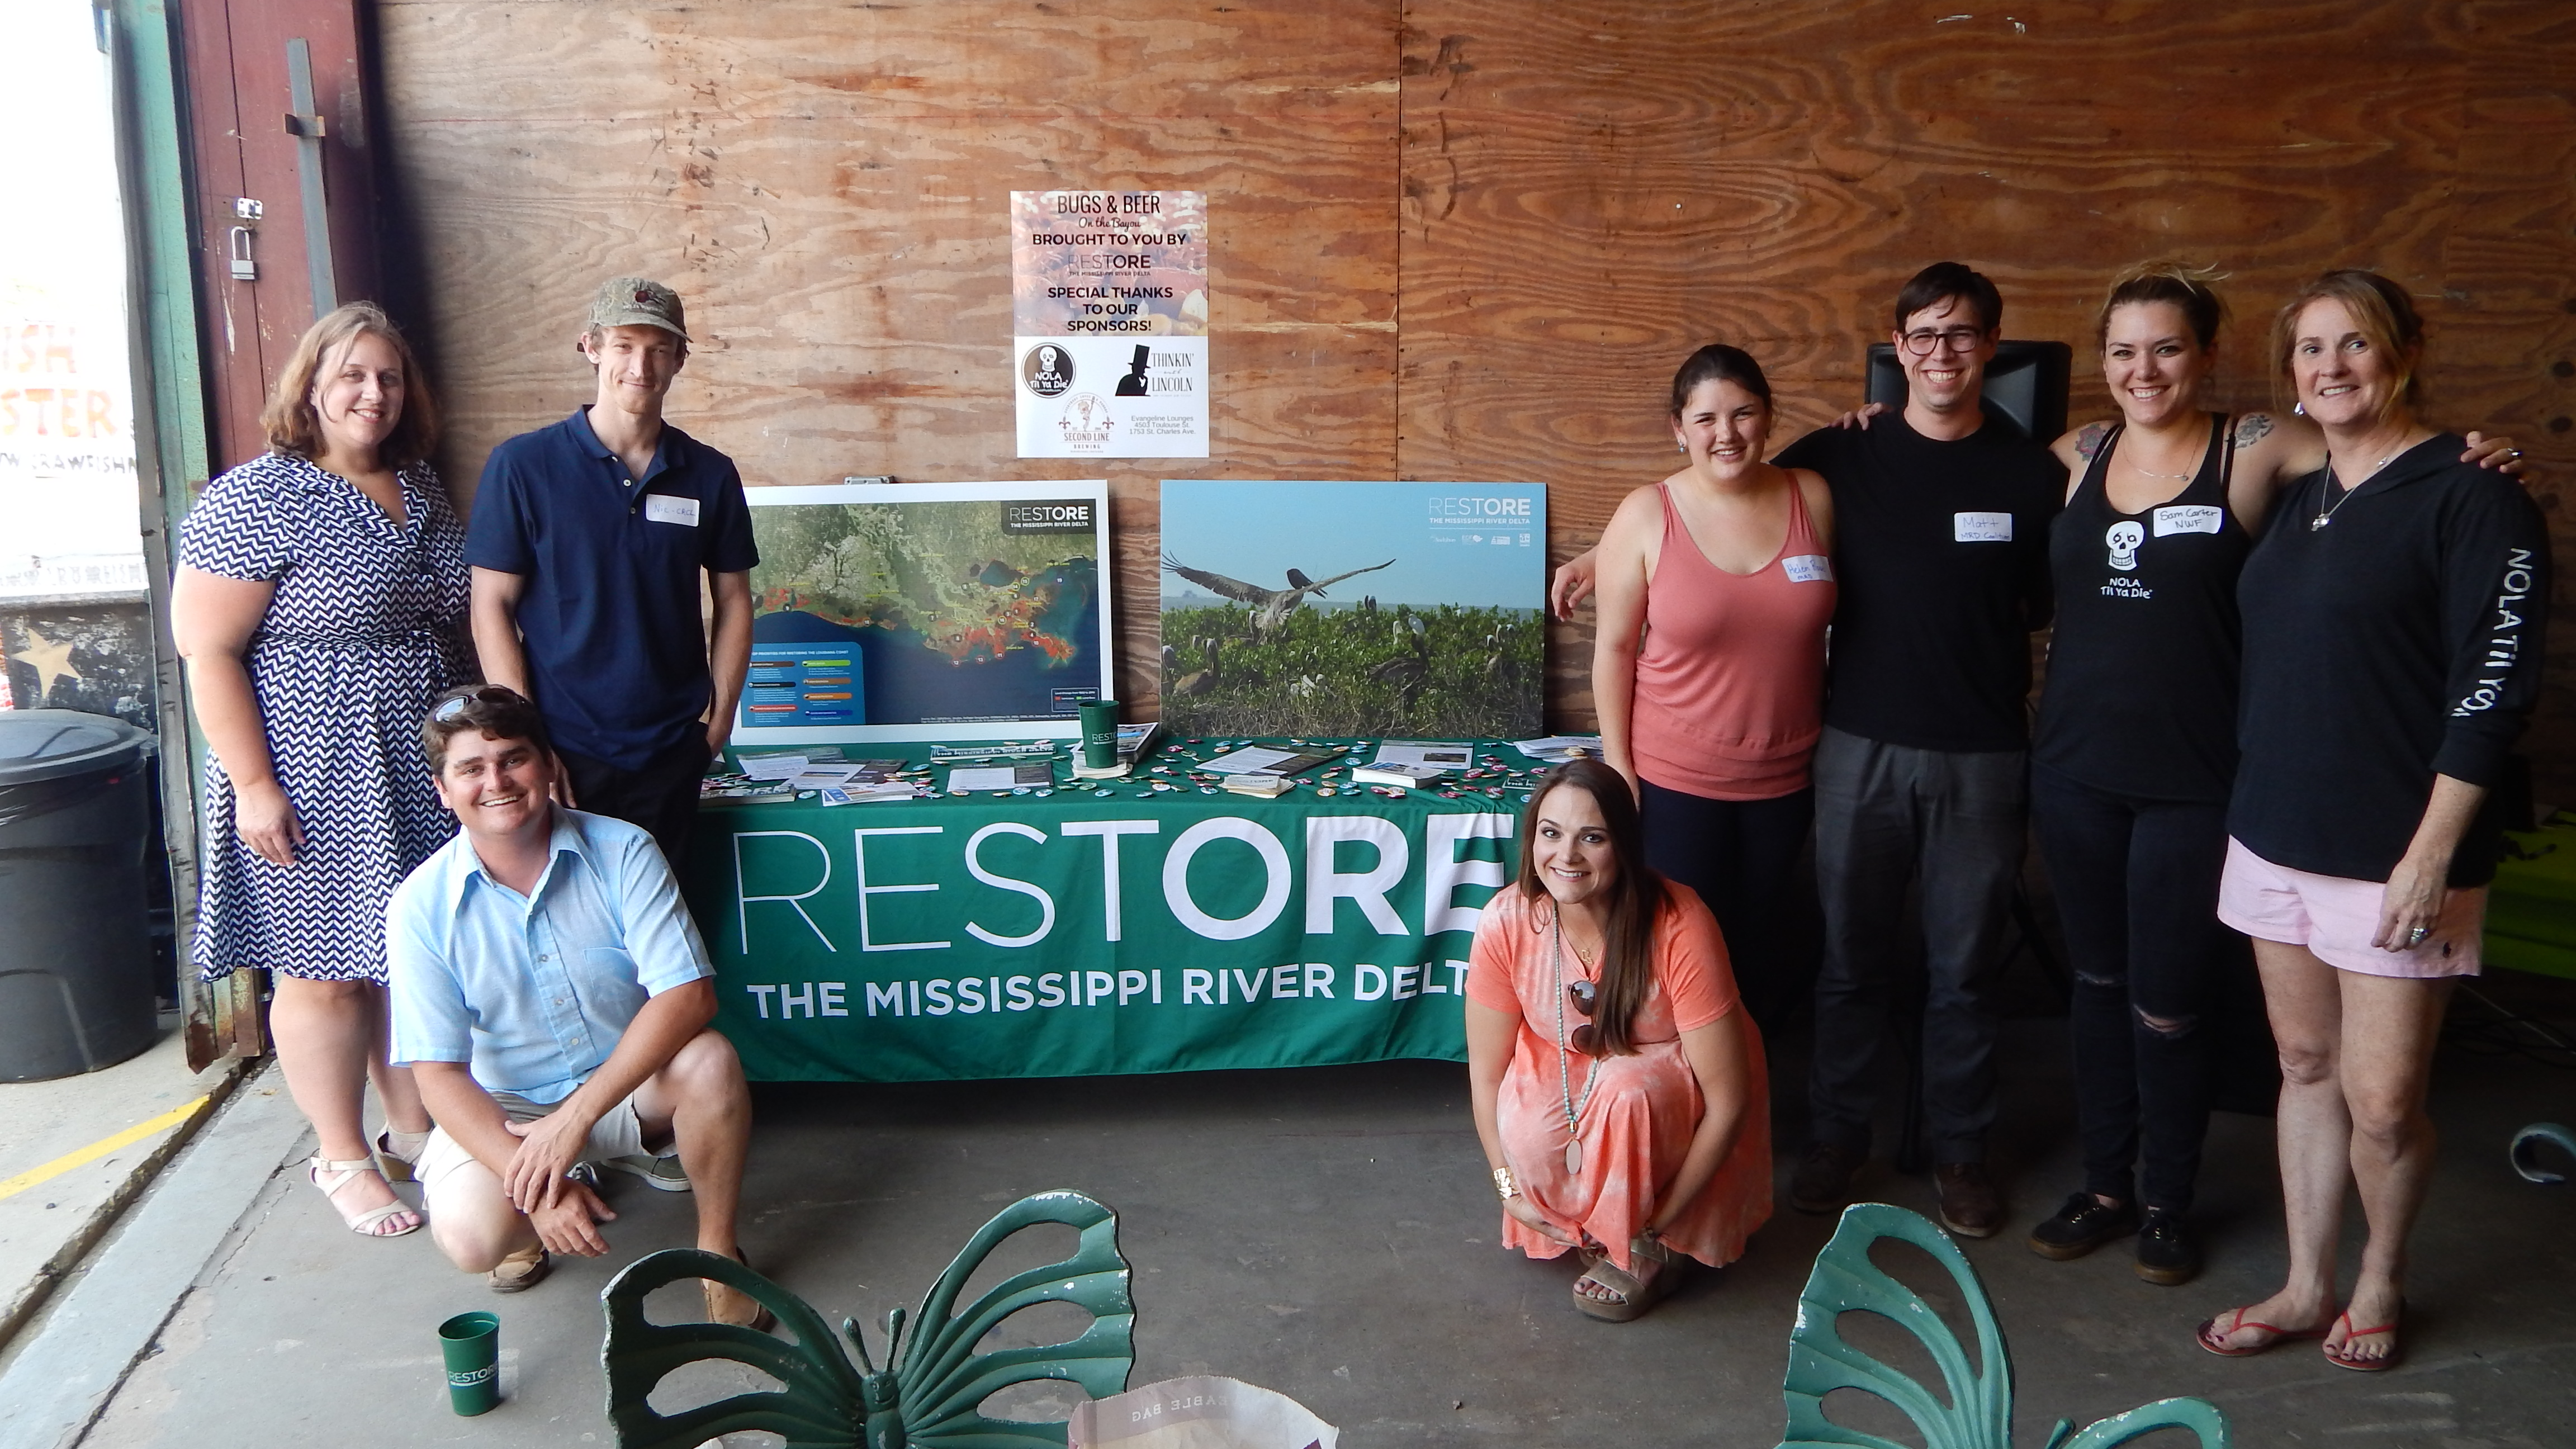 Kassy McCall, on the far right, with Restore the Mississippi River Delta staff at Bugs & Beer on the Bayou